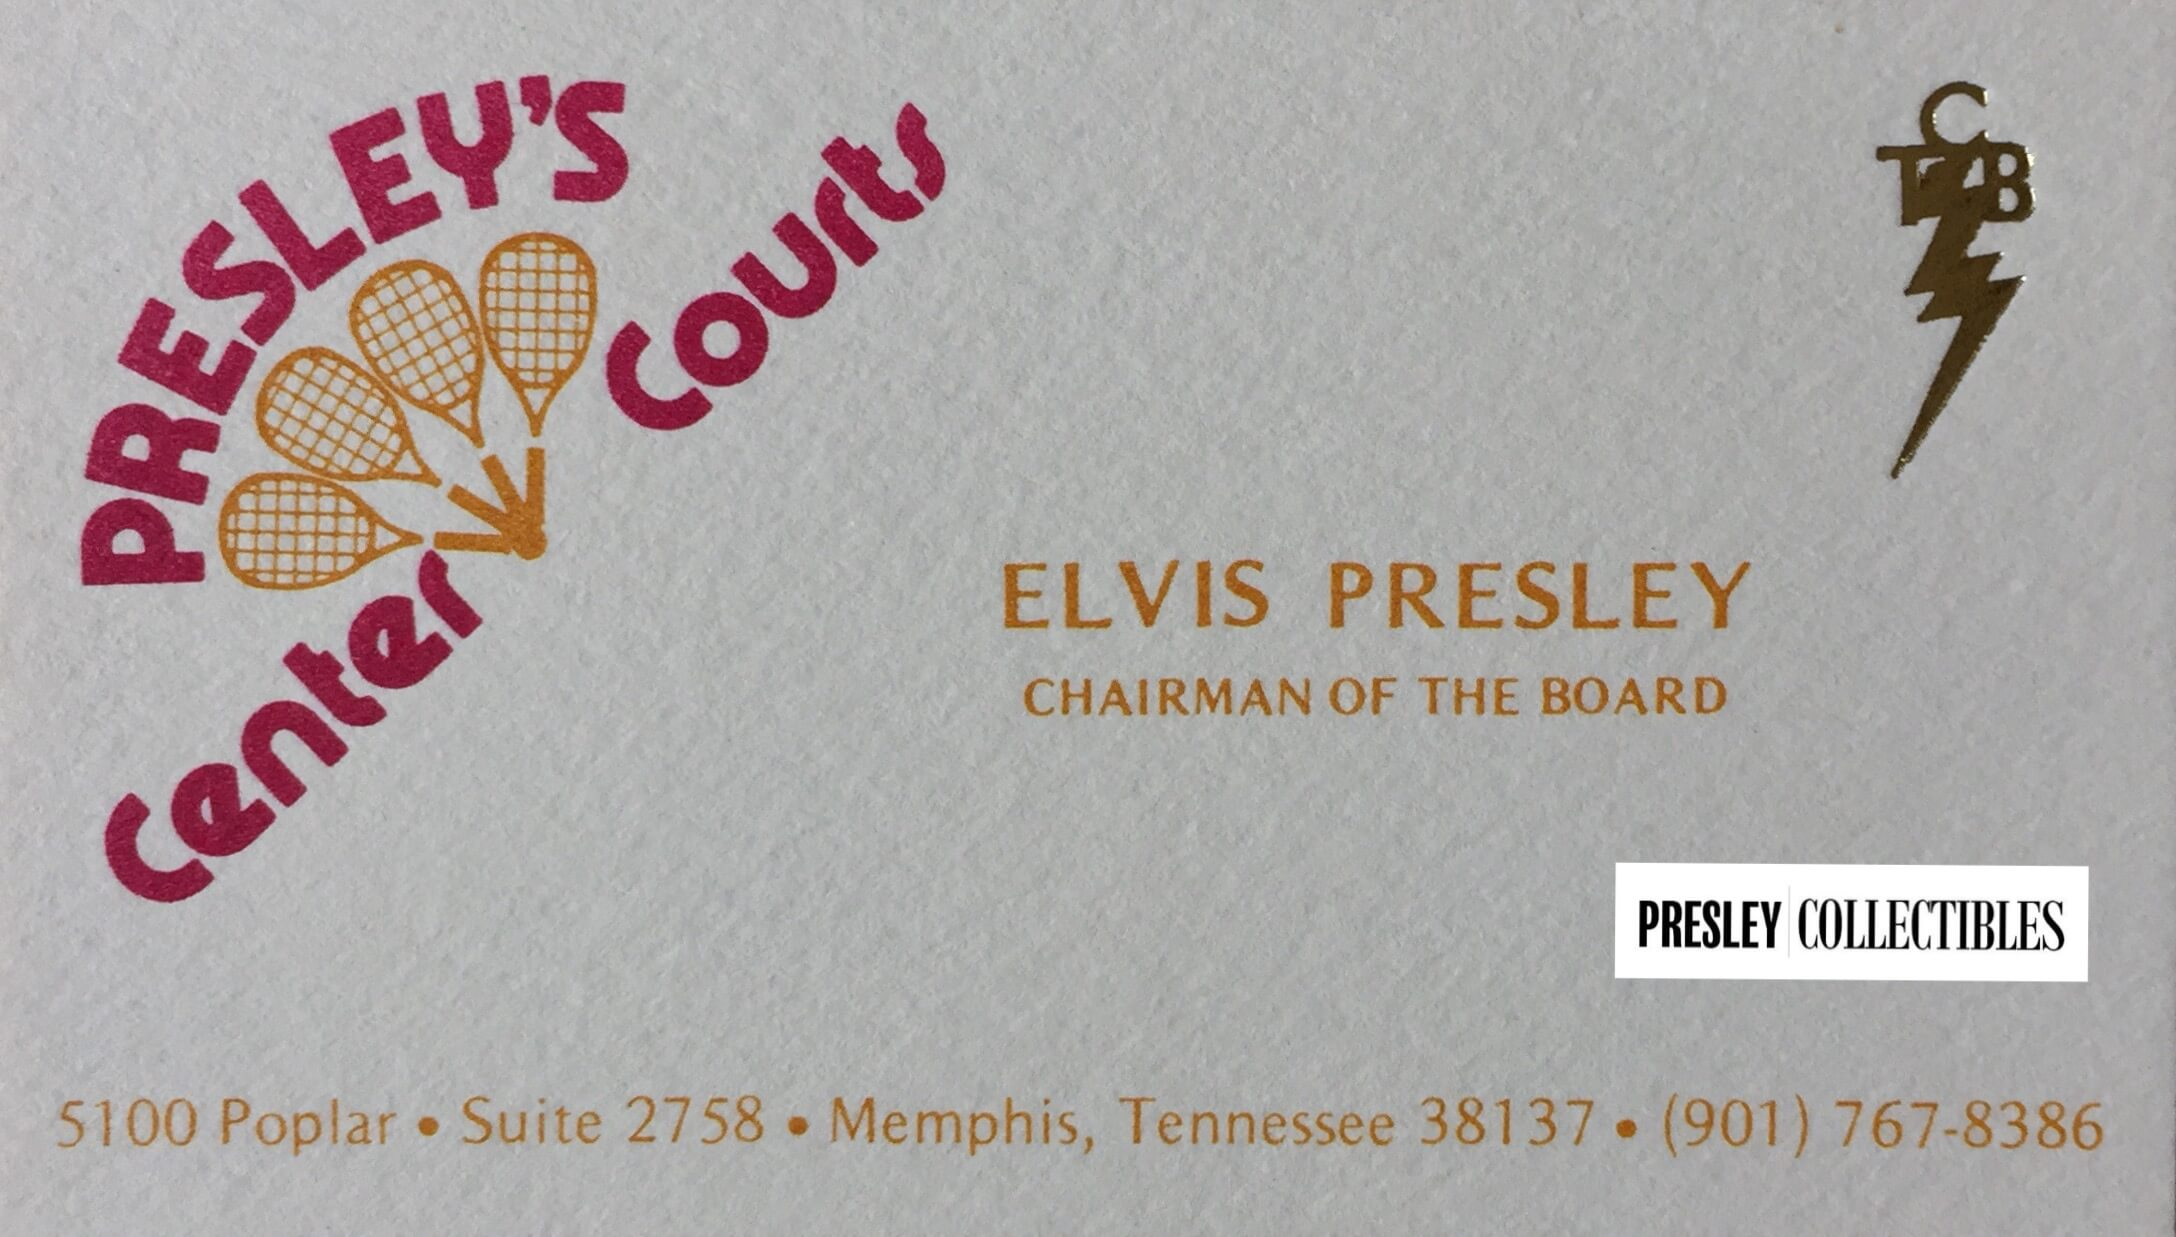 Presley Center Courts Business Cards - Presley Collectibles